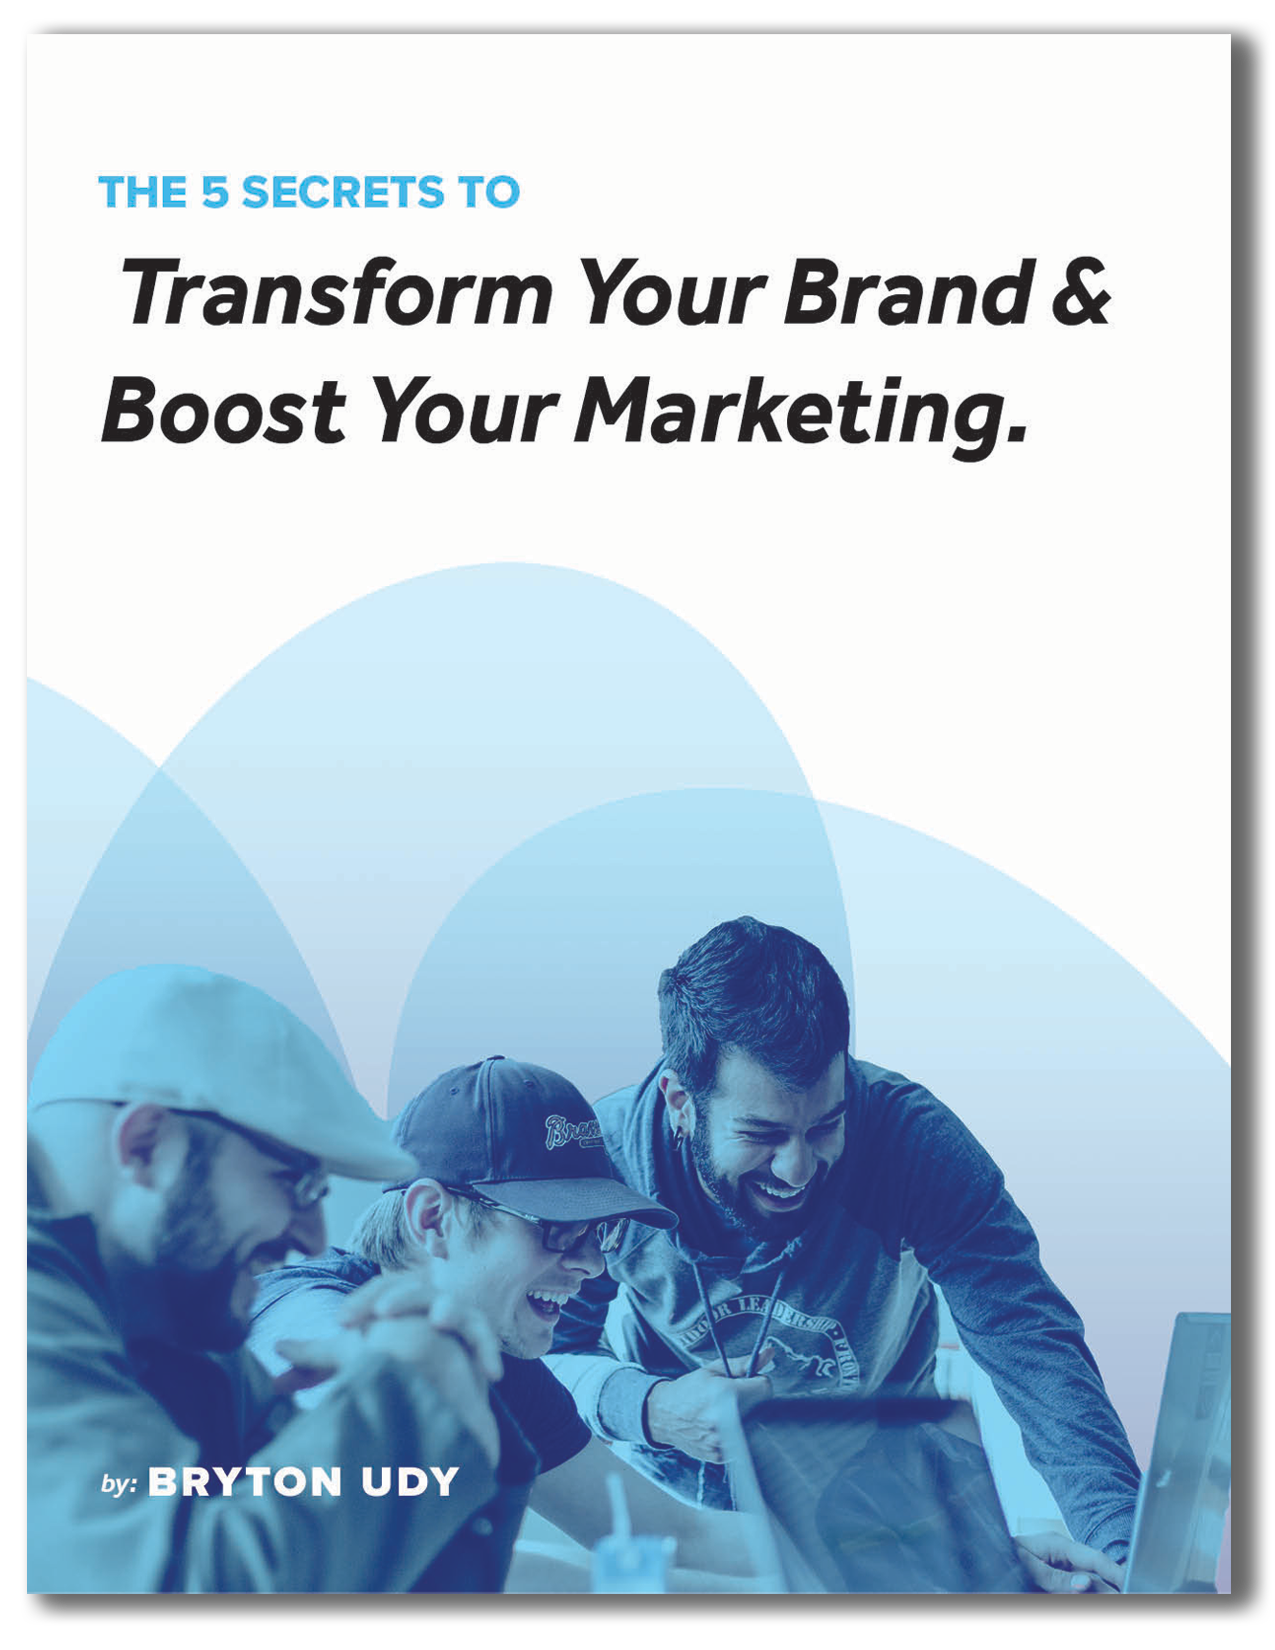 Get The Free Ebook! - Learn the 5 secrets that make brands successful. Implement these 5 tips, see a boost in your marketing, and transform your brand today!